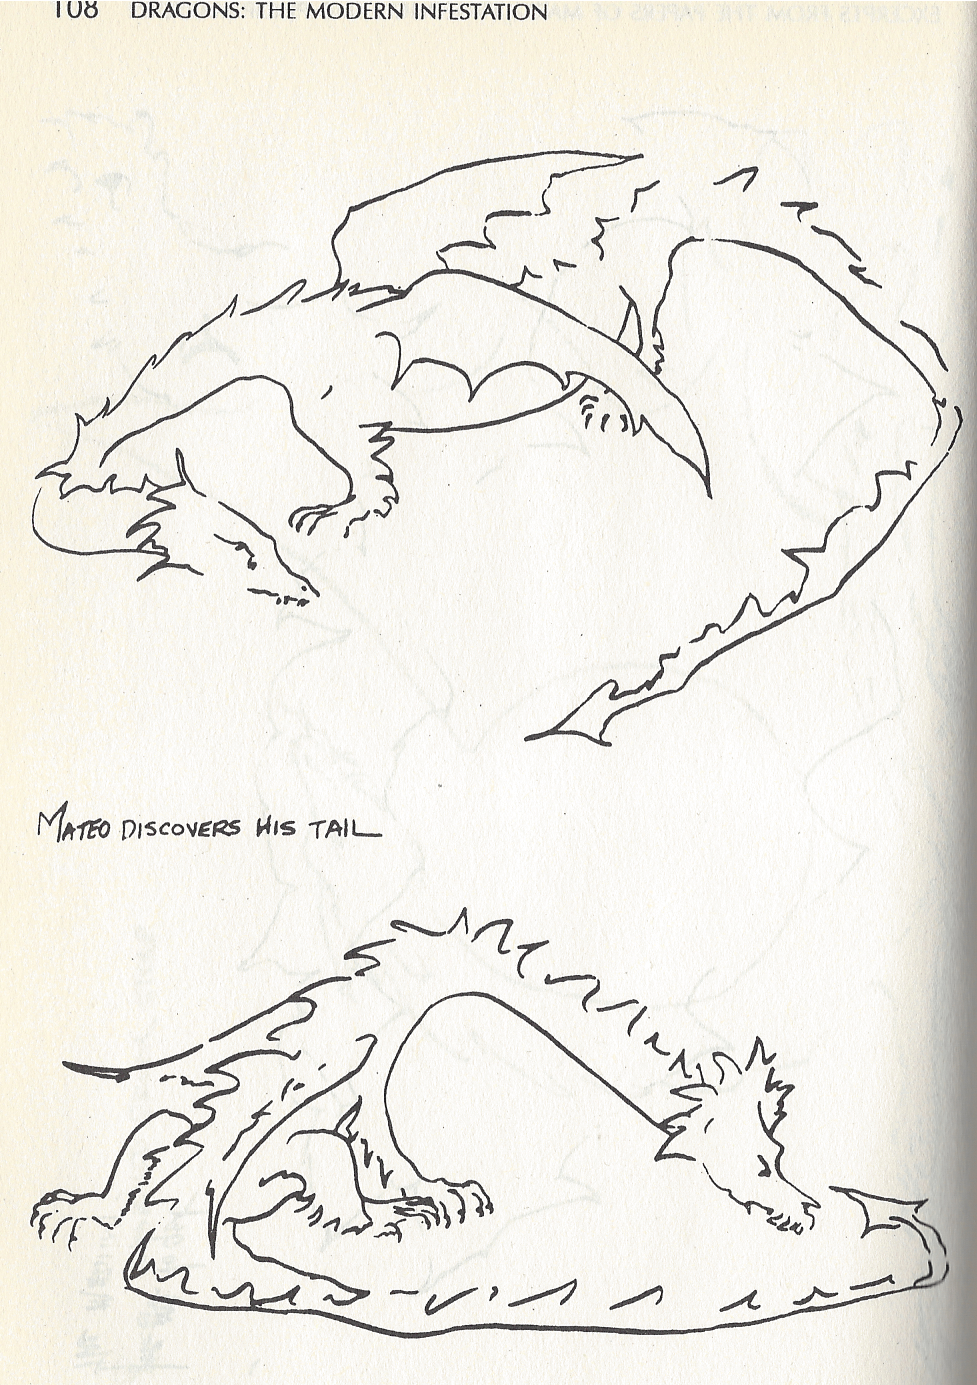 A sketch from Marta Froedlich, a renowned dragon scientist, from her time in Chile observing dragons